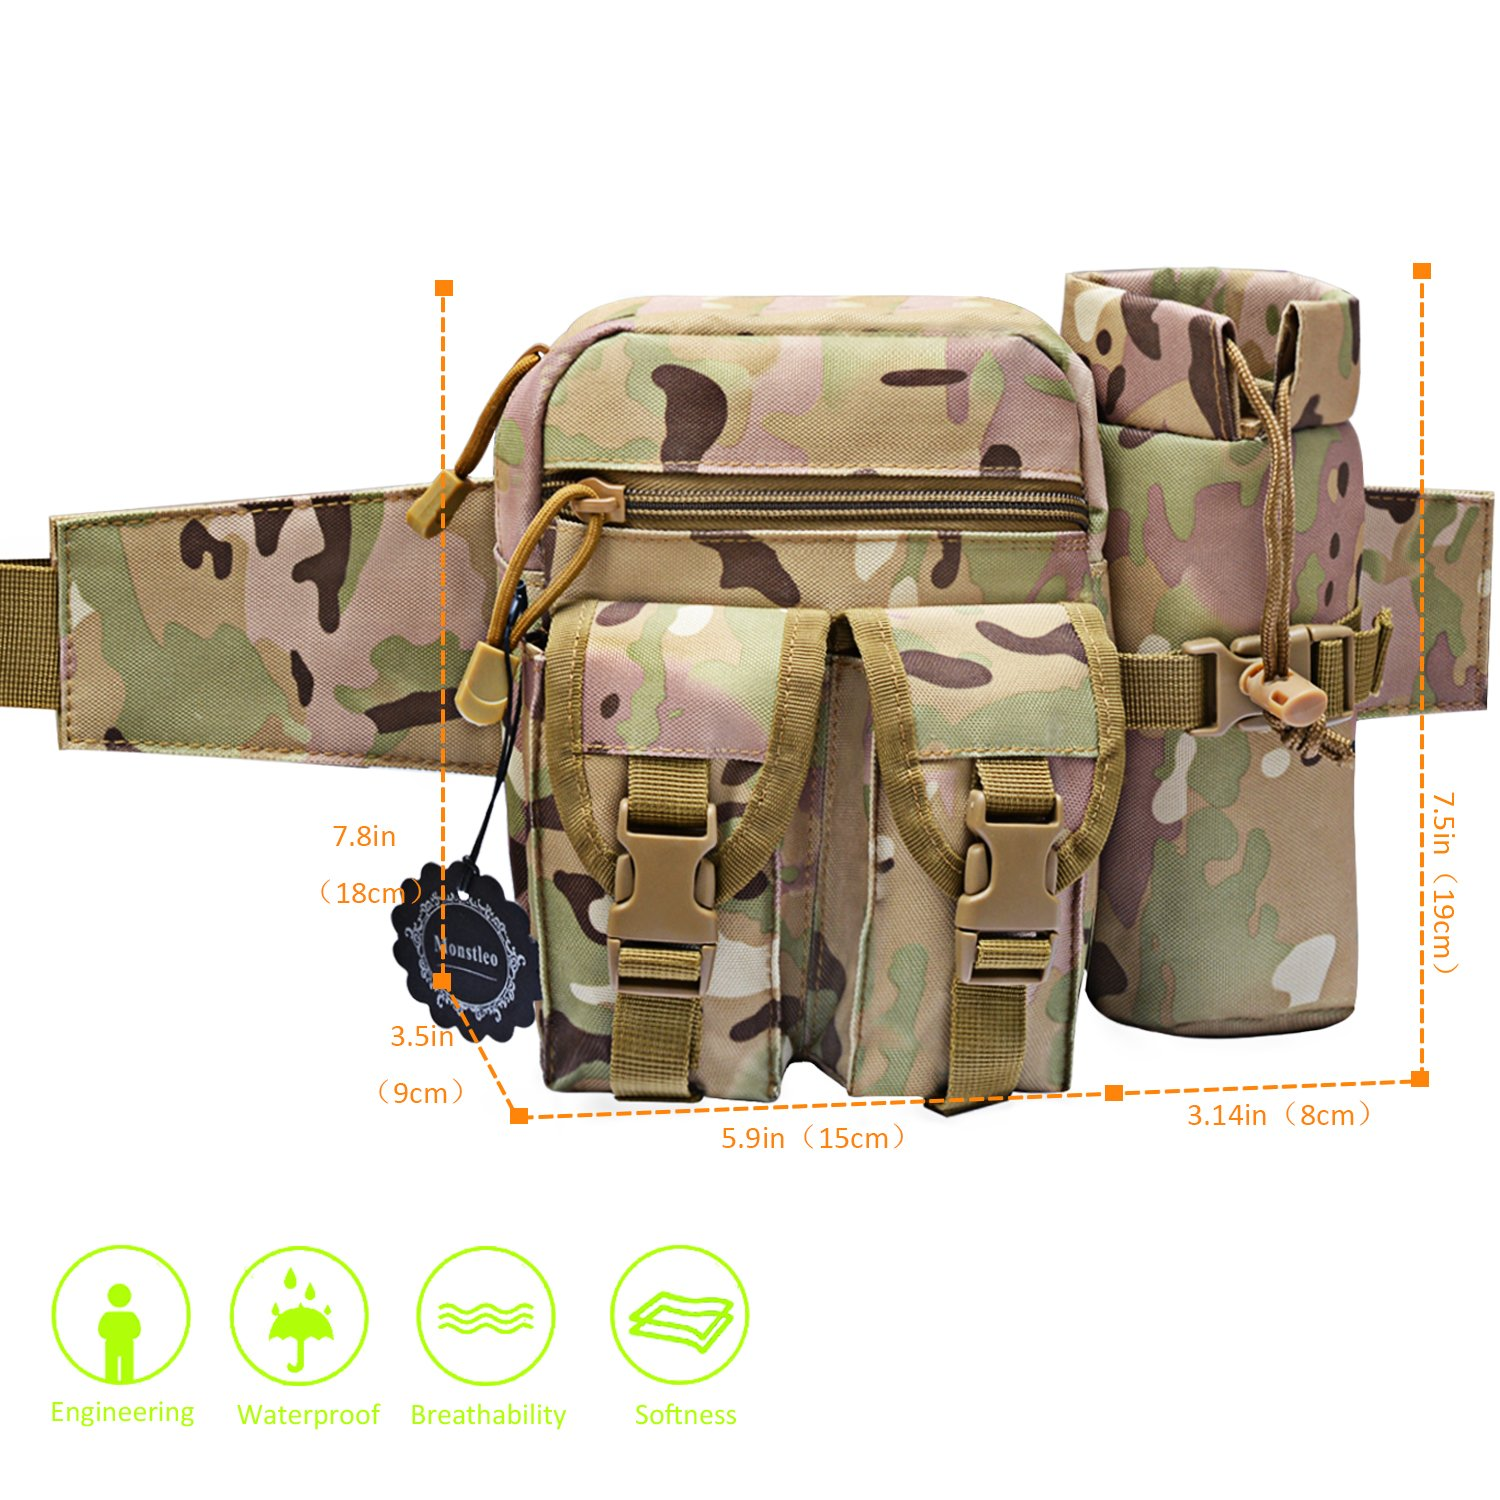 Tactical Waist Pack with Water Bottle Holder, Monstleo Waterproof Military Outdoor Army Waist Fanny Pack for Cycling Camping Hiking Hunting Fishing (CP Camouflage)